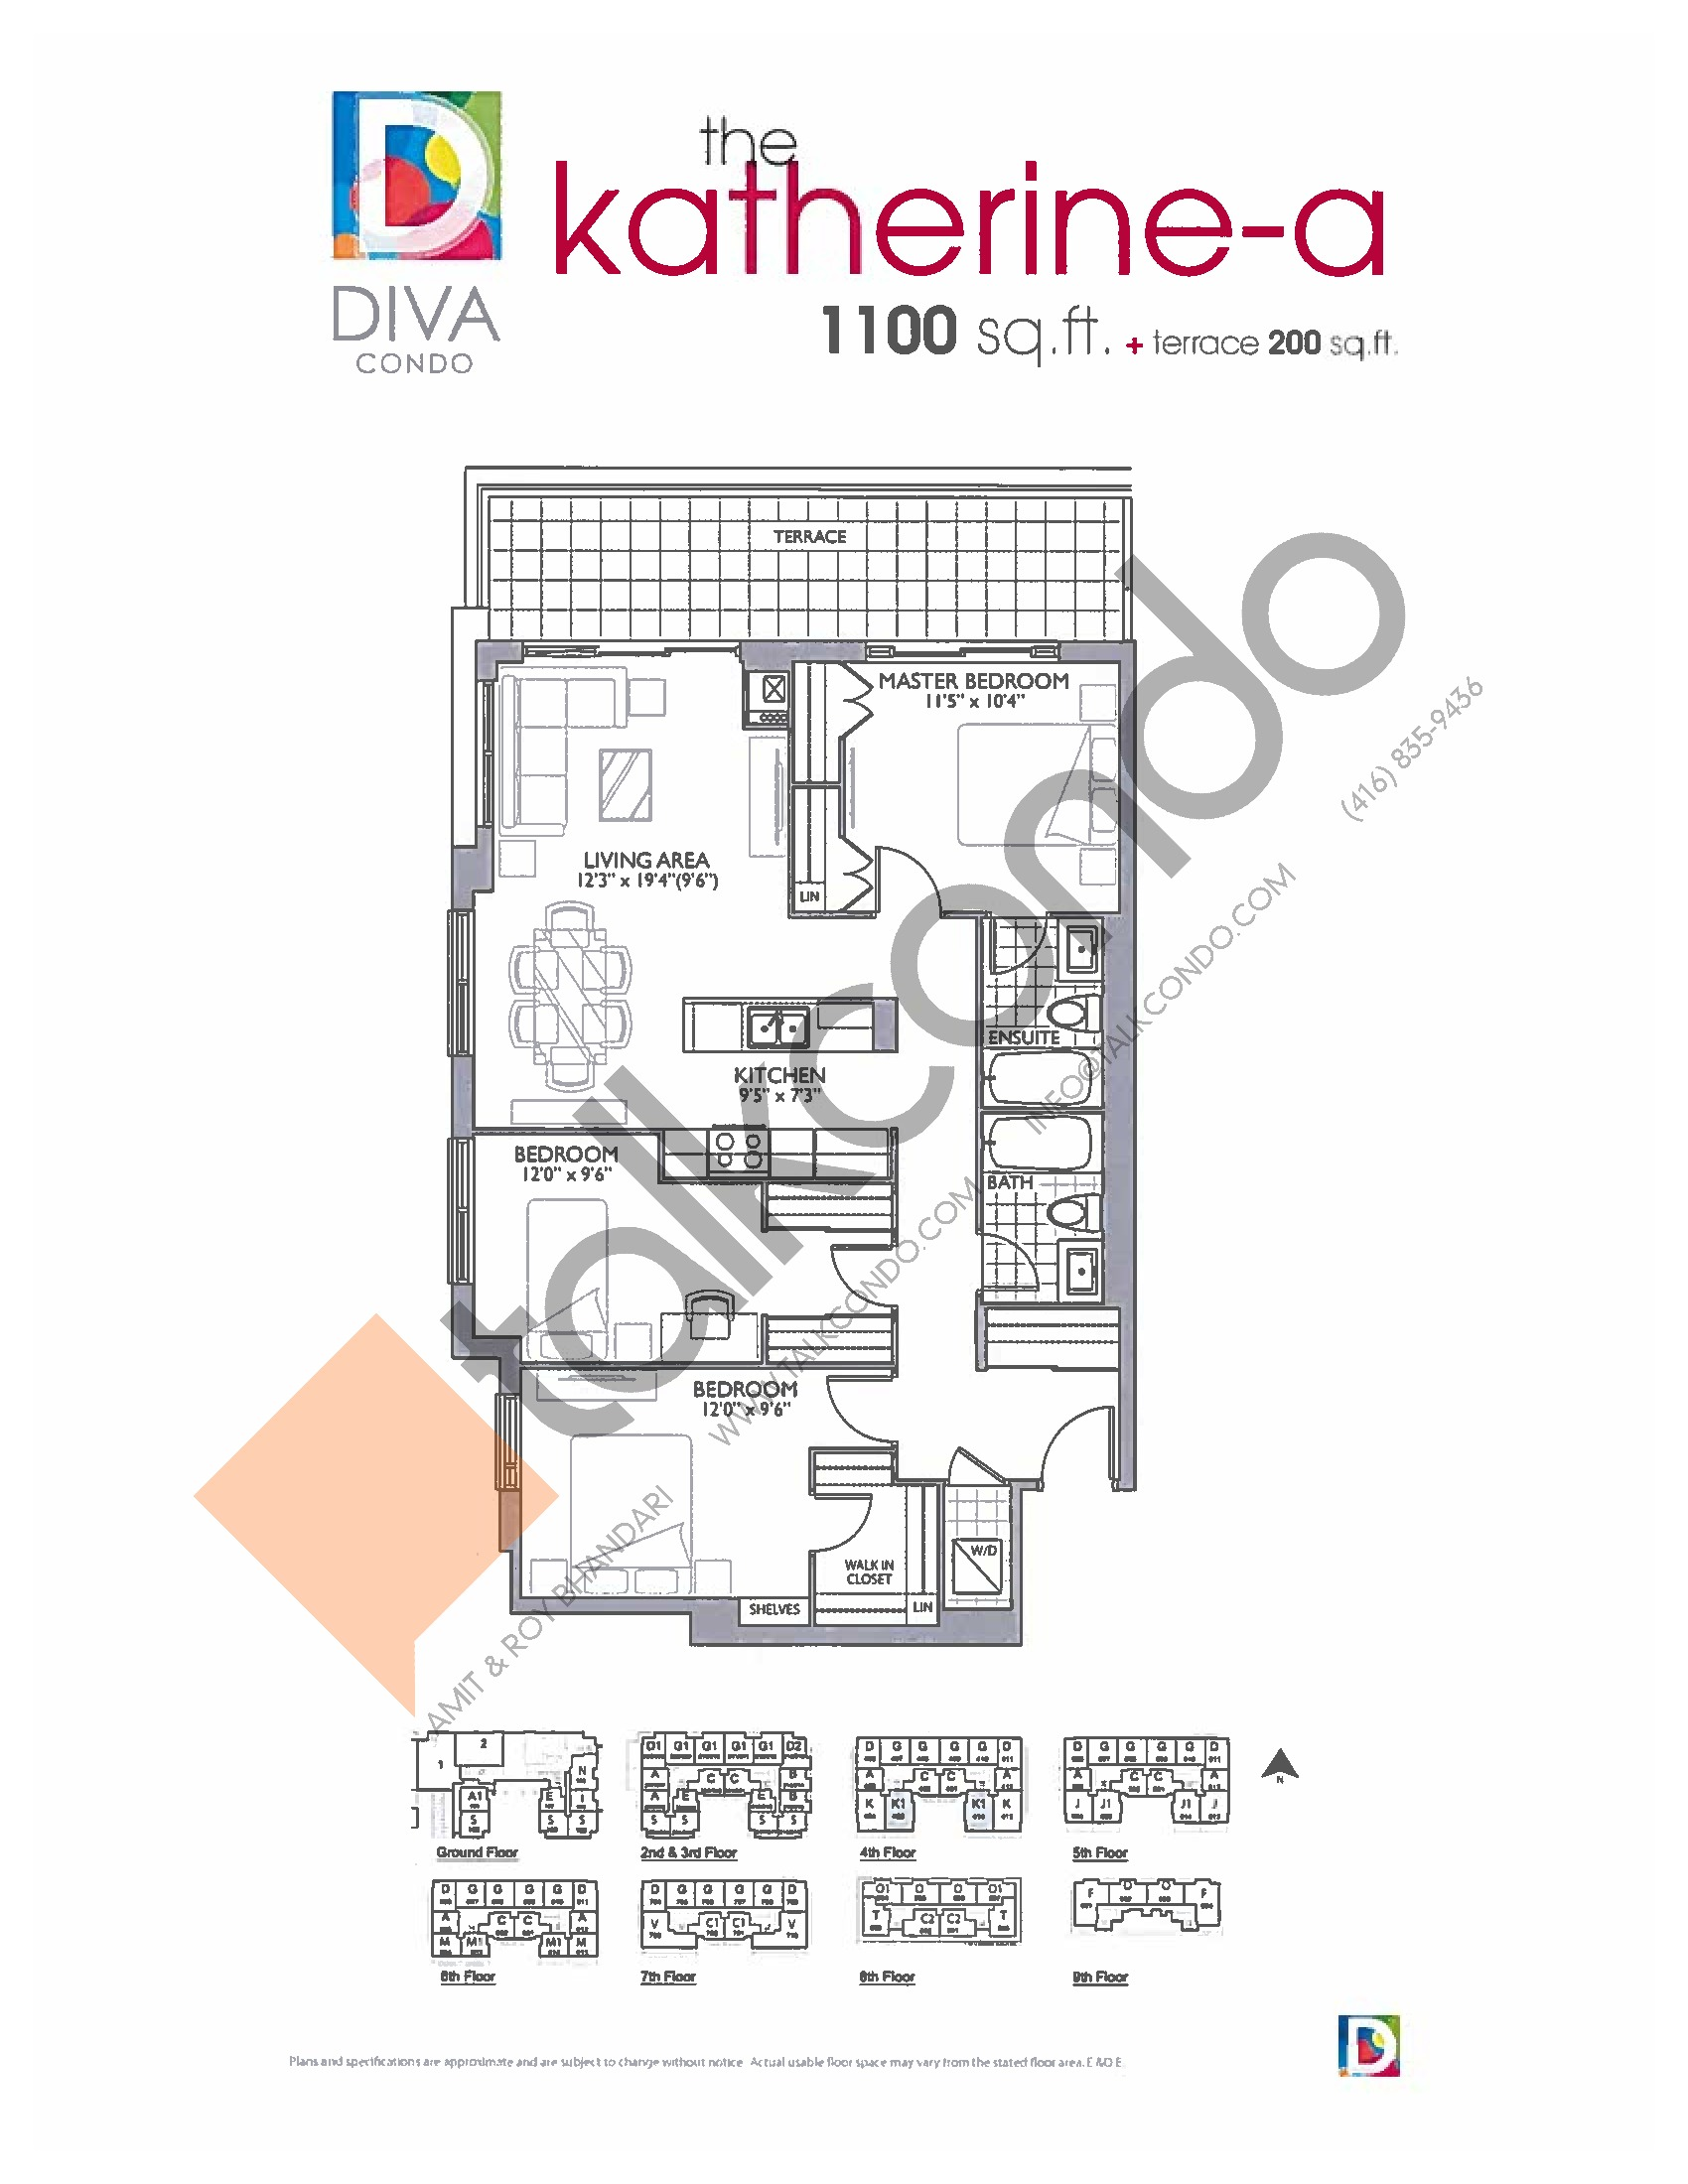 Diva Condos The Katherine A 1100 Sq Ft 3 Bedrooms